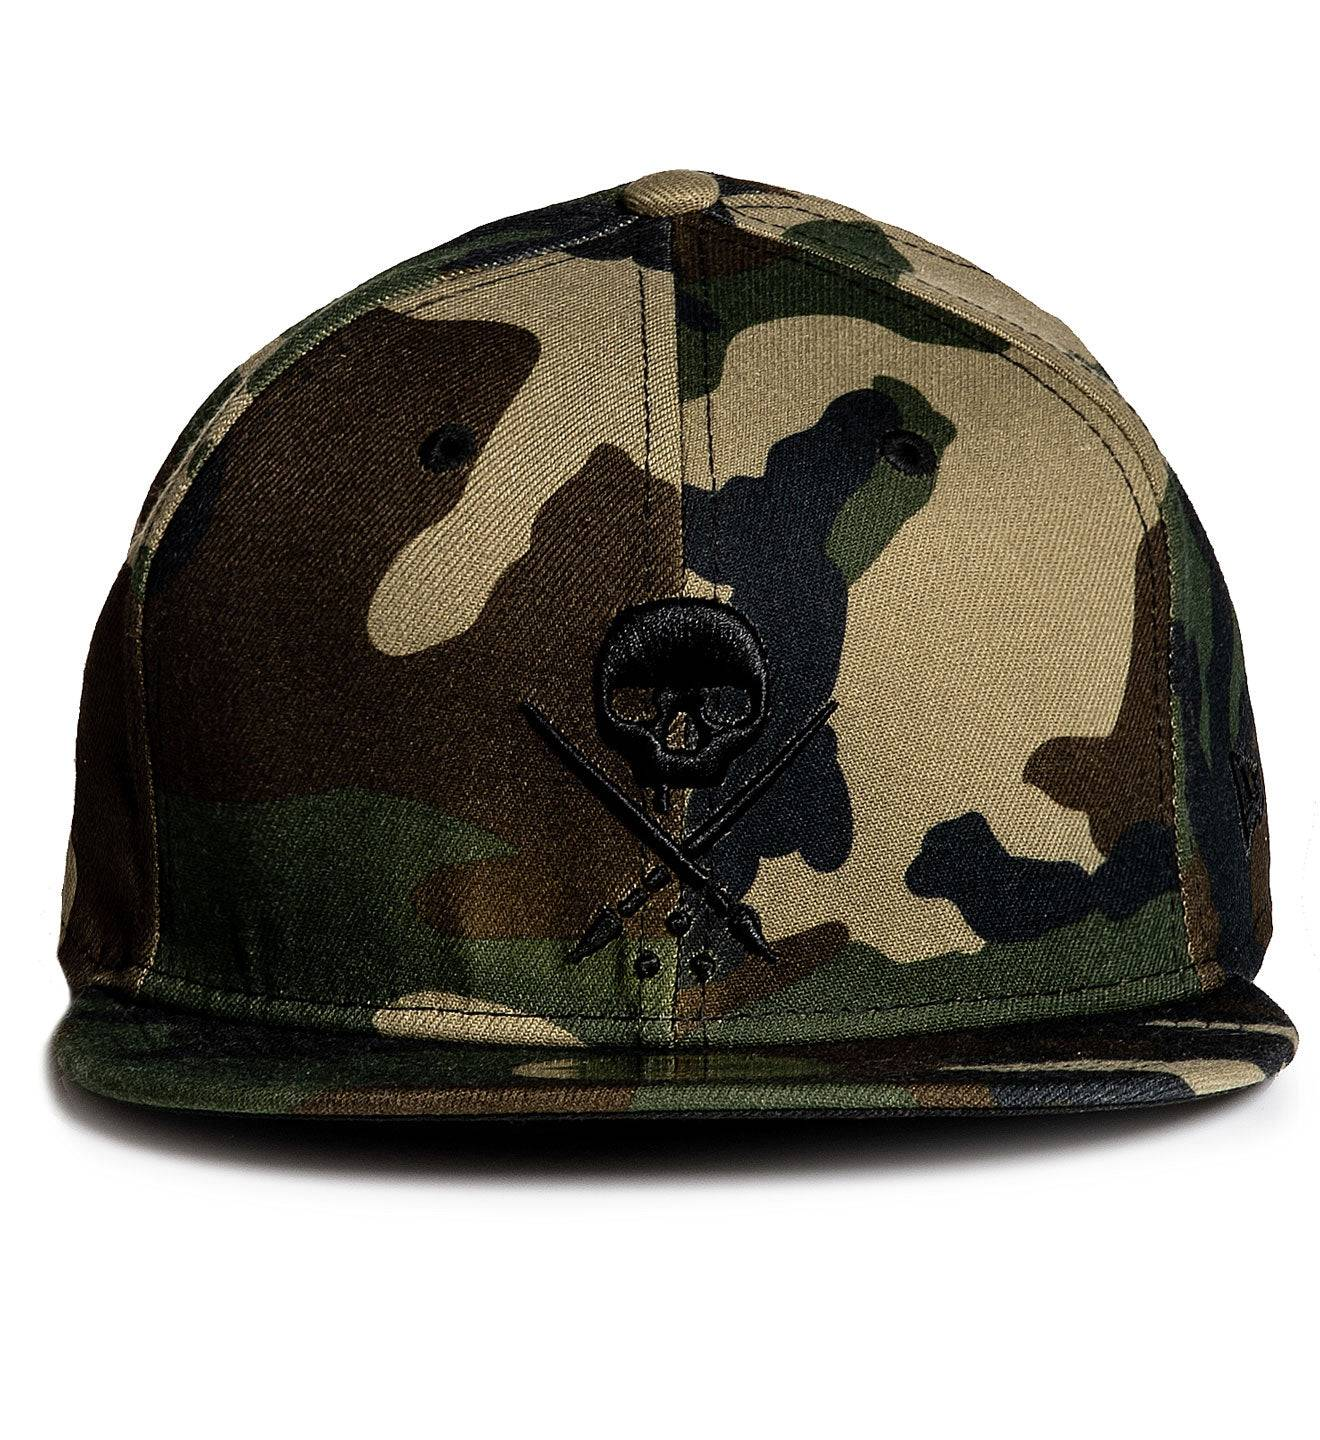 Mens Fitted Badge Stretched Camo, CAMO / 71/8